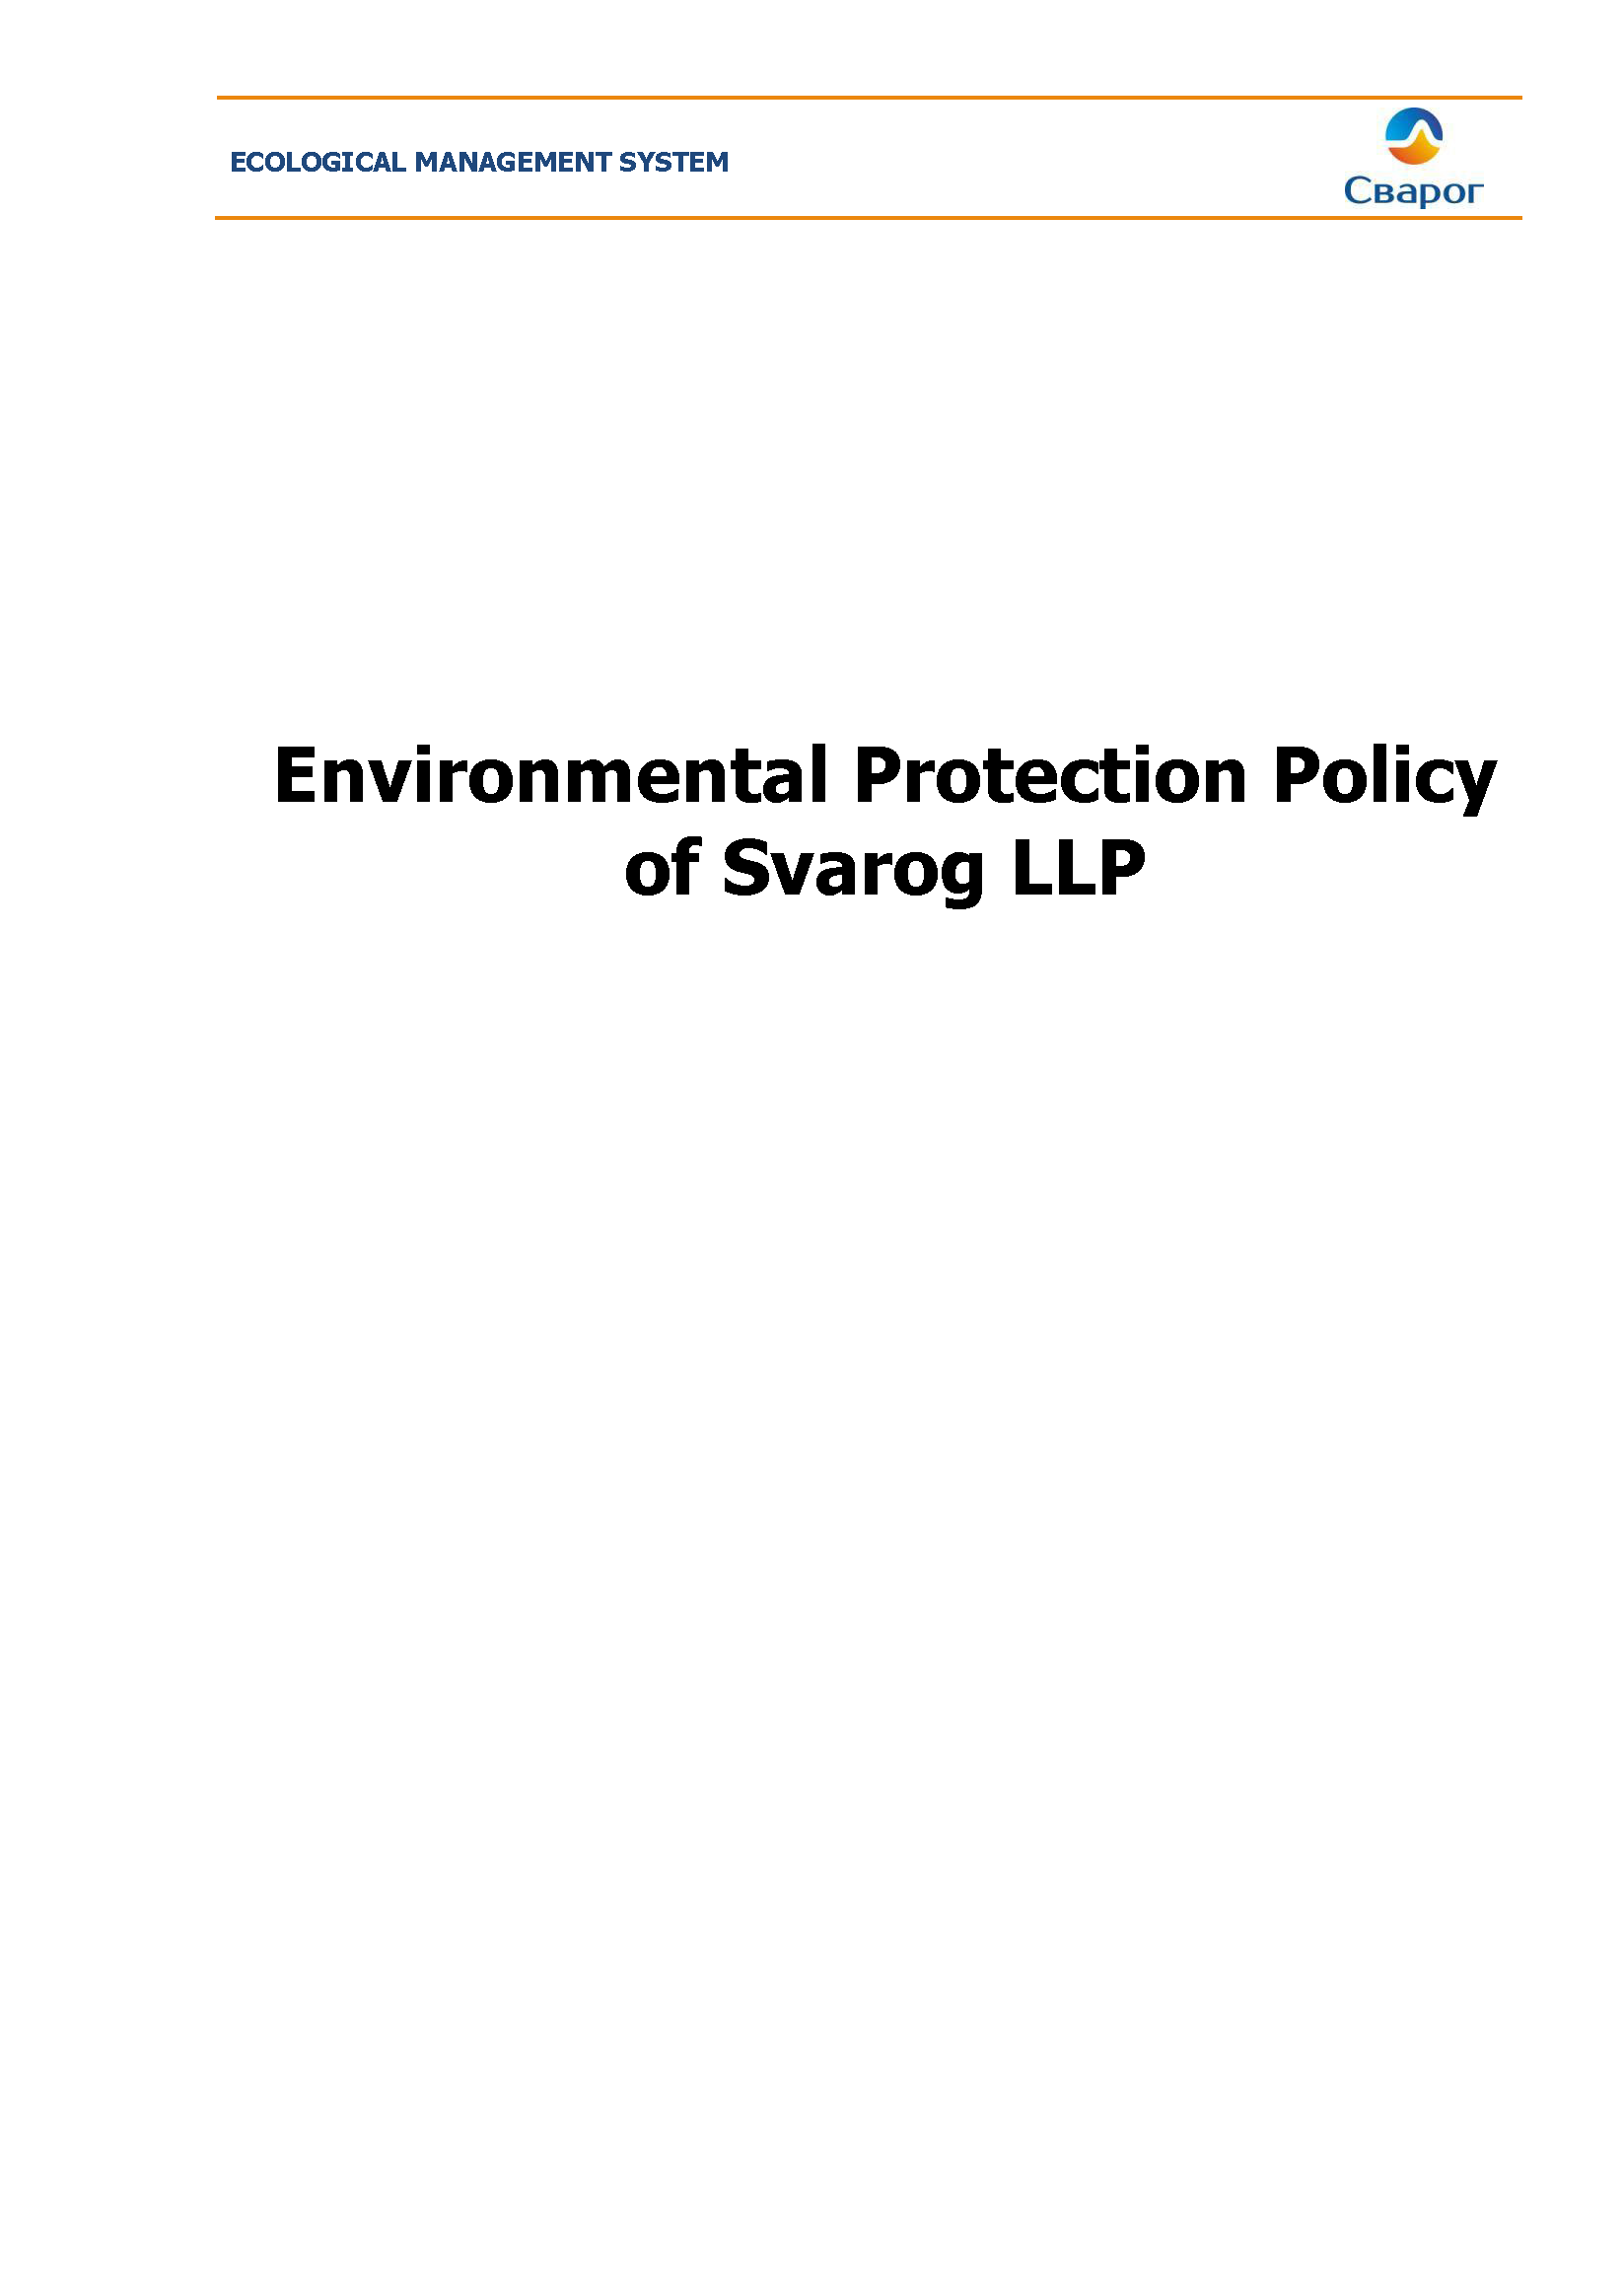 Environmental Protection Policy of Svarog LLP